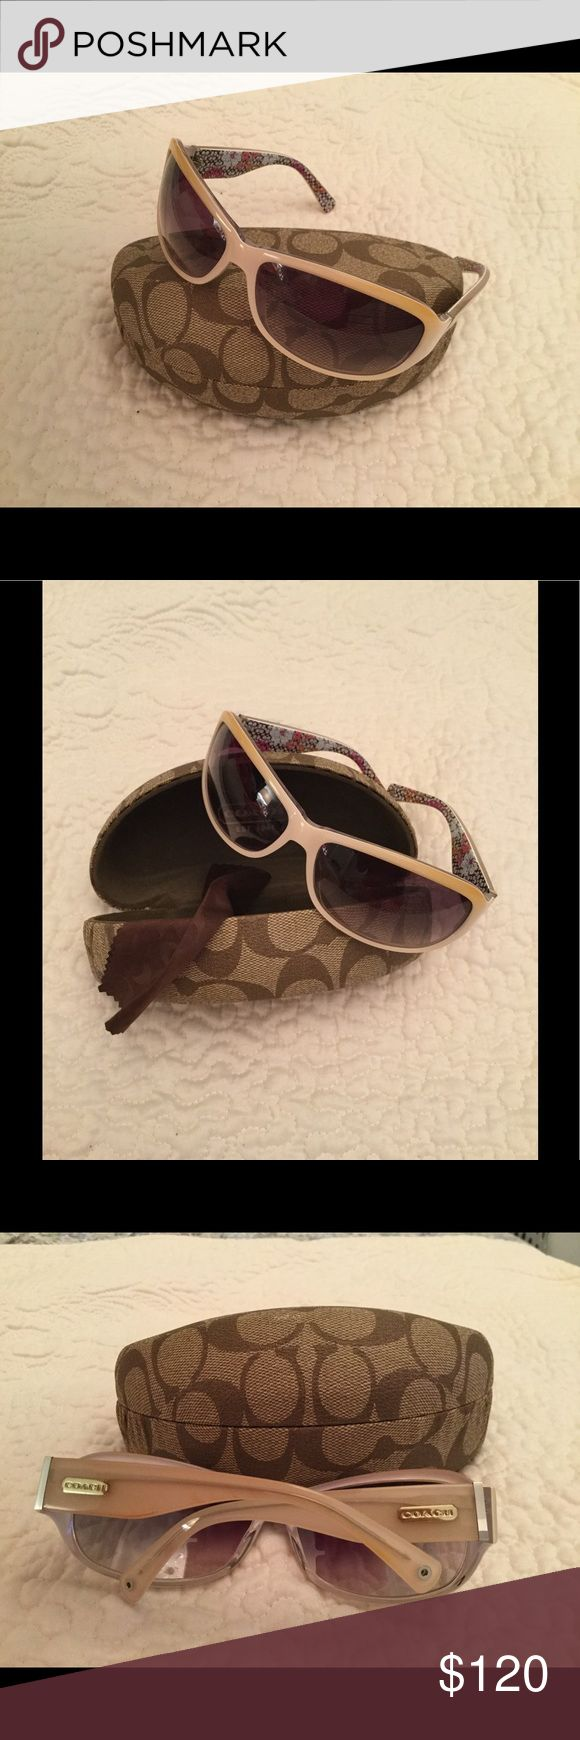 COACH SARAH S437 IVORY SUNGLASSES NWOT Brand new Coach Sarah S437 Ivory color with floral print inside arms. Never worn!!! No scratches. Comes with original Coach hard case and Coach cloth. NWOT Coach Accessories Sunglasses